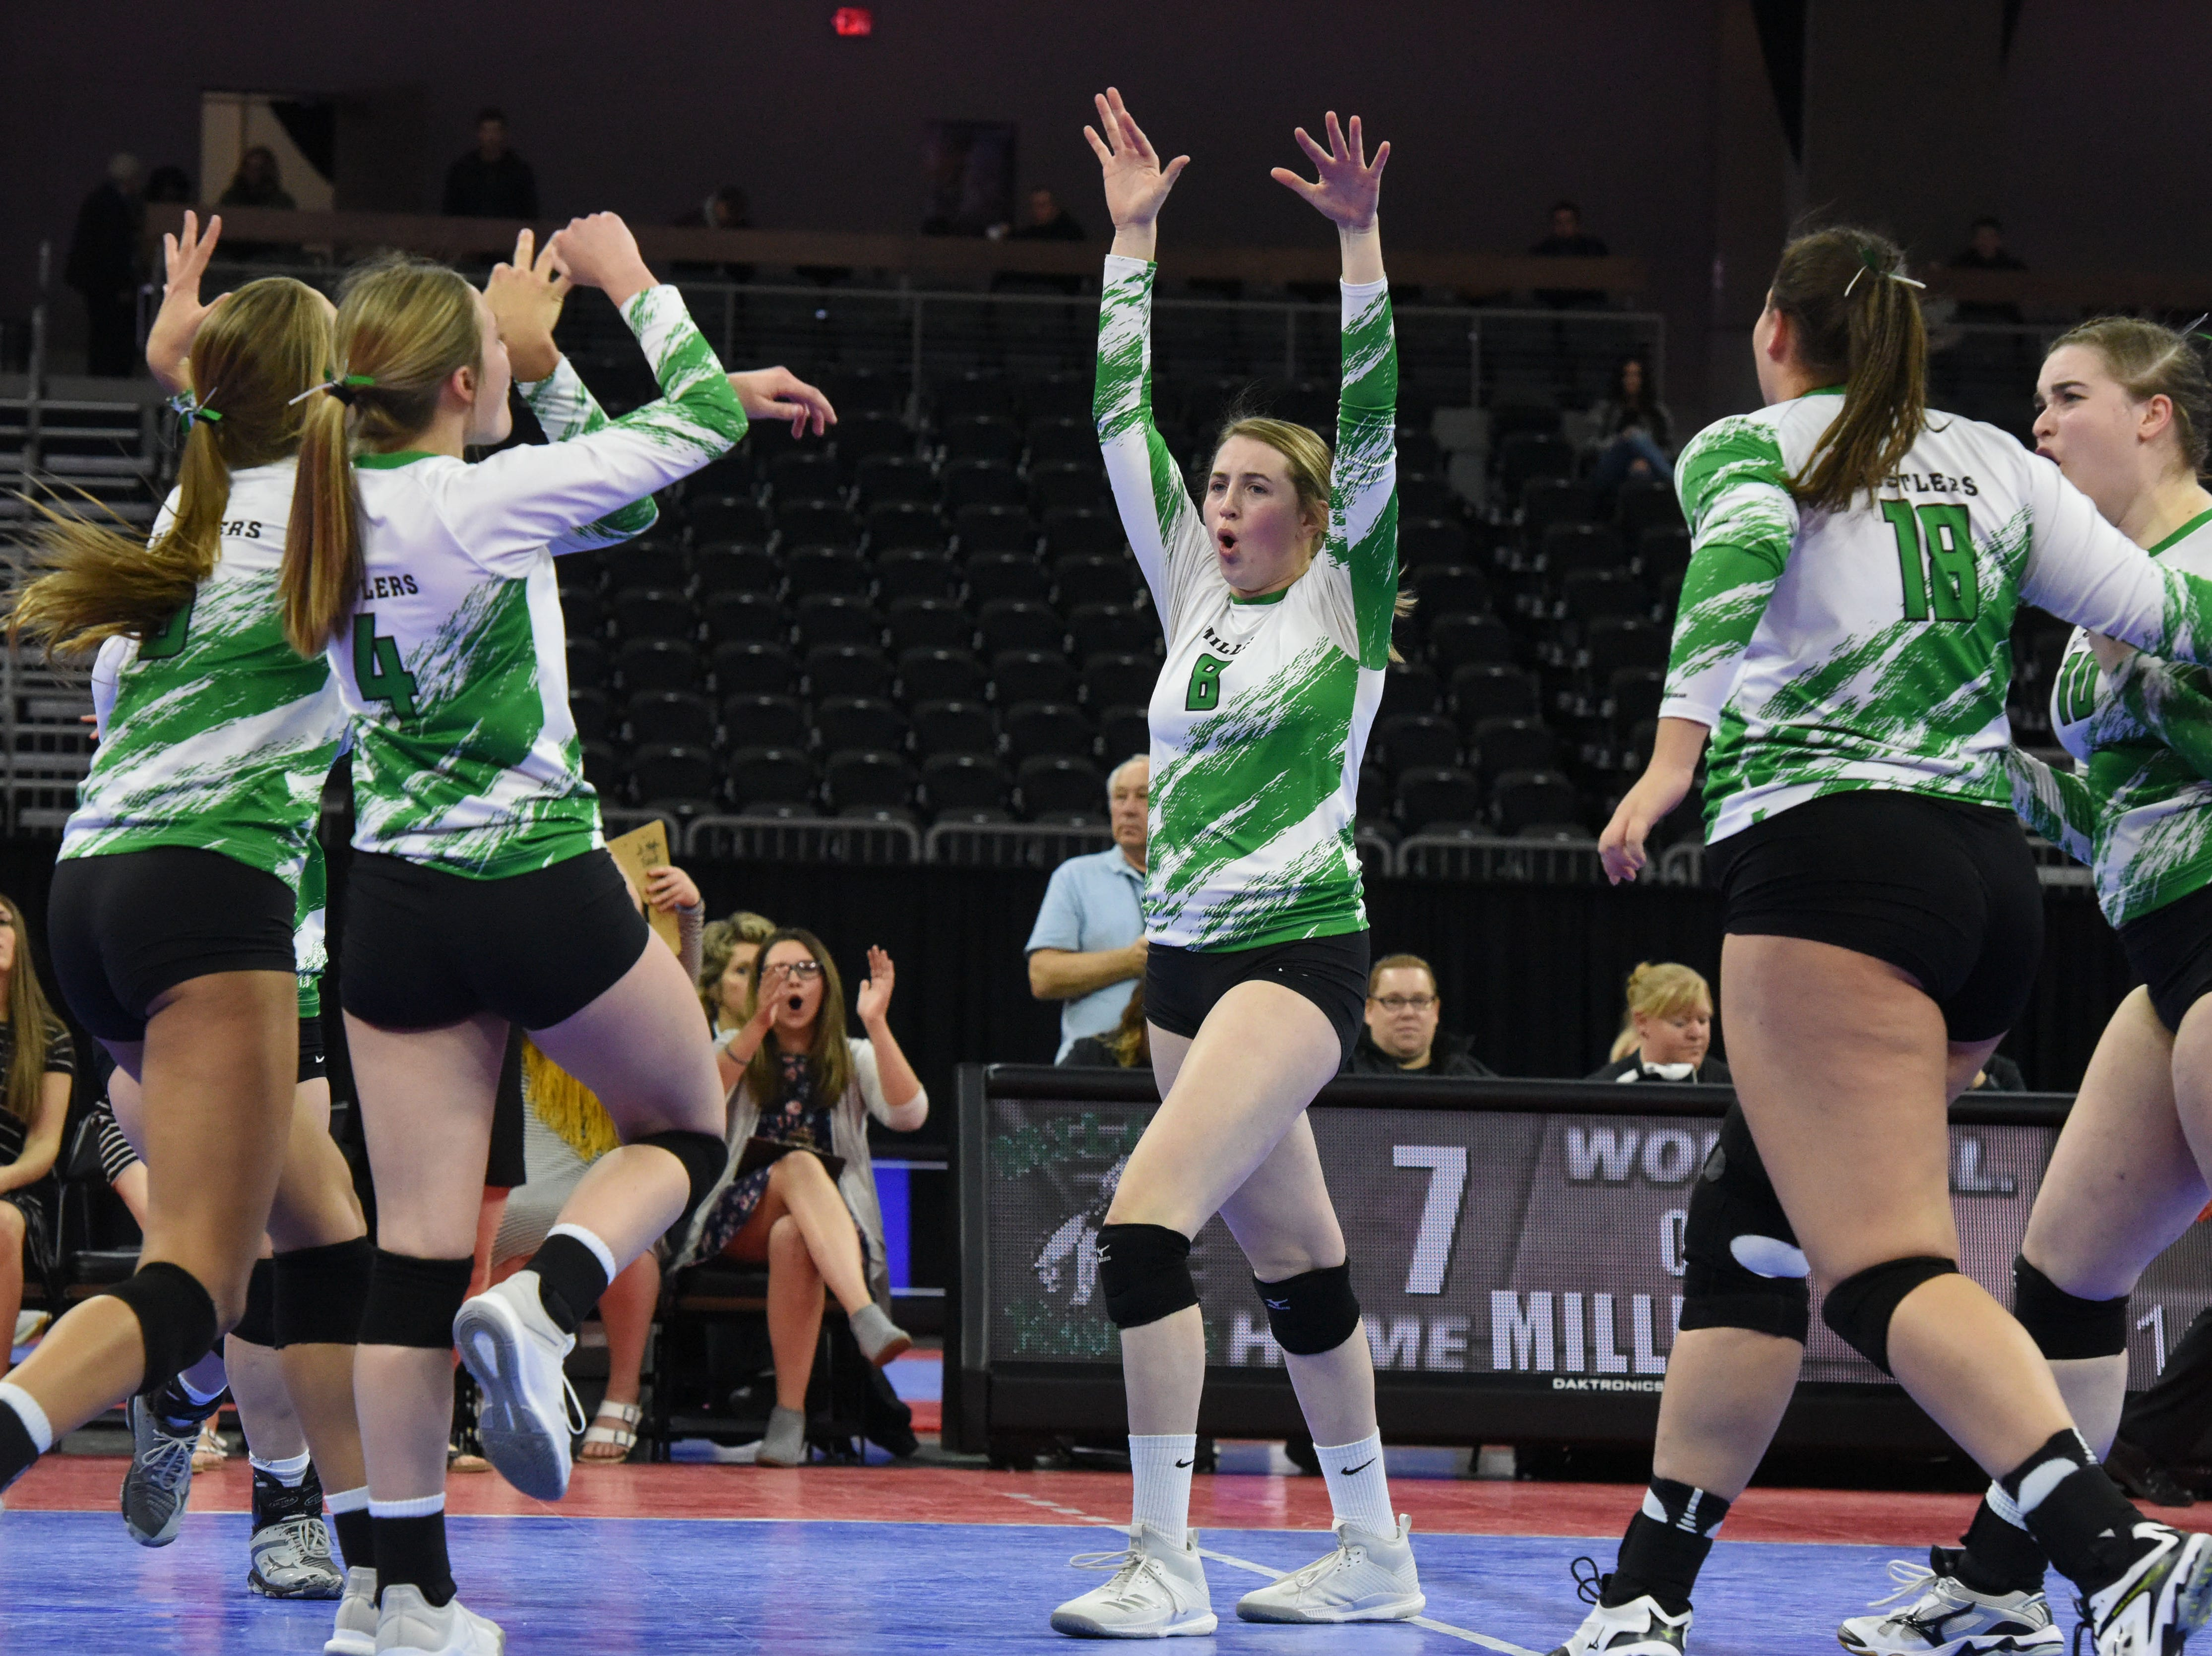 Miller players react during a match against Sioux Falls Christian, Saturday, Nov. 17, 2018, at the Denny Sanford Premier Center in Sioux Falls, S.D.